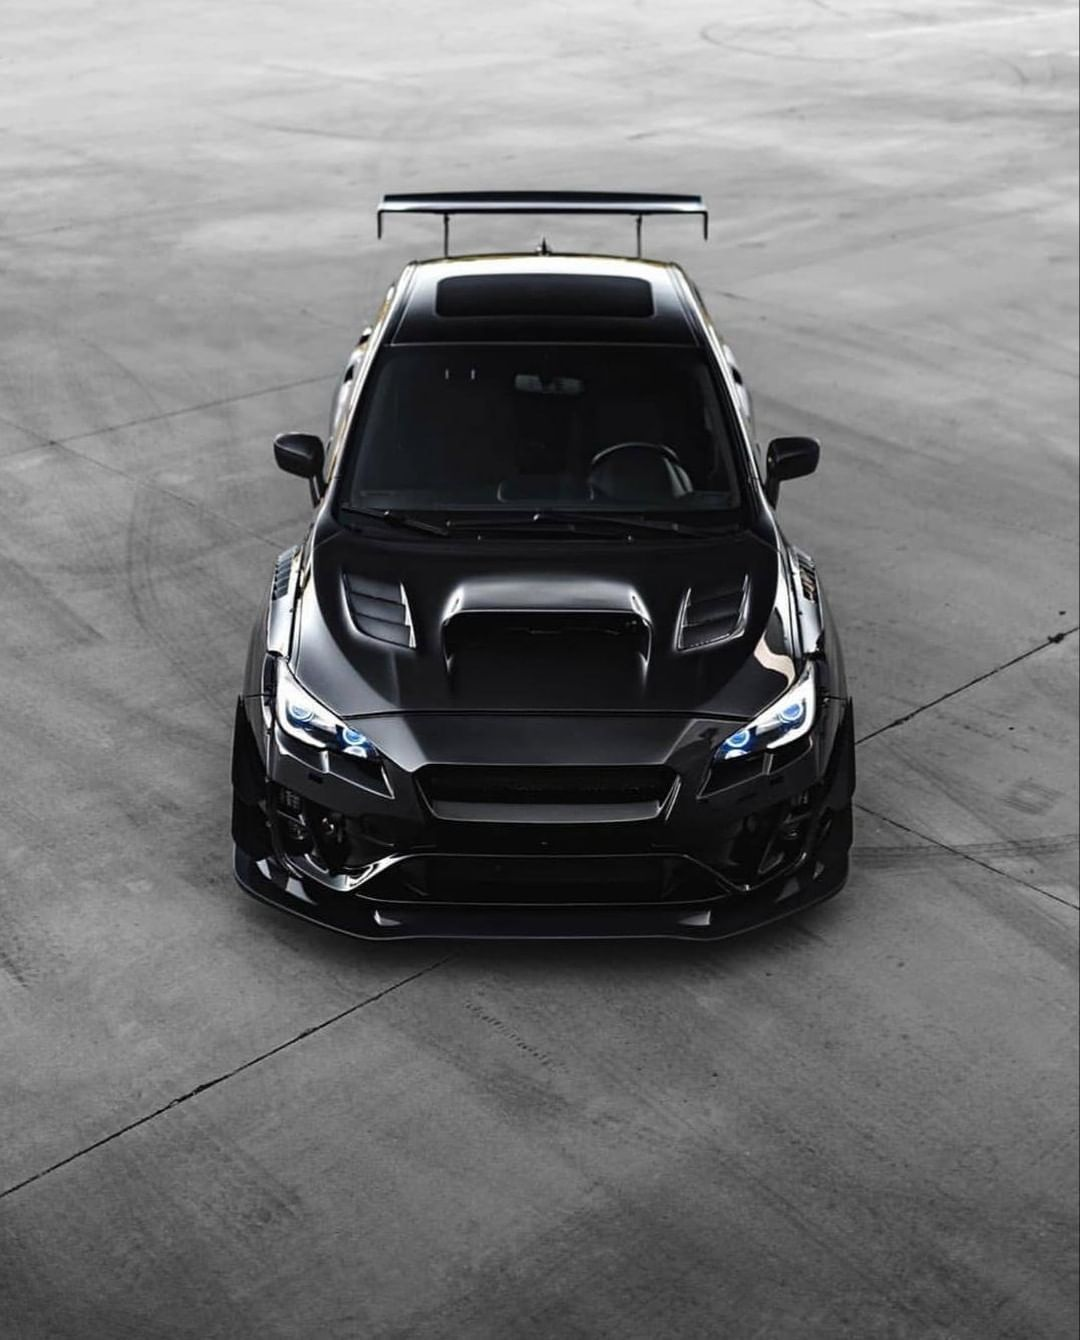 "Welcome To The Car Game on Instagram: ""Subaru WRX STi"""